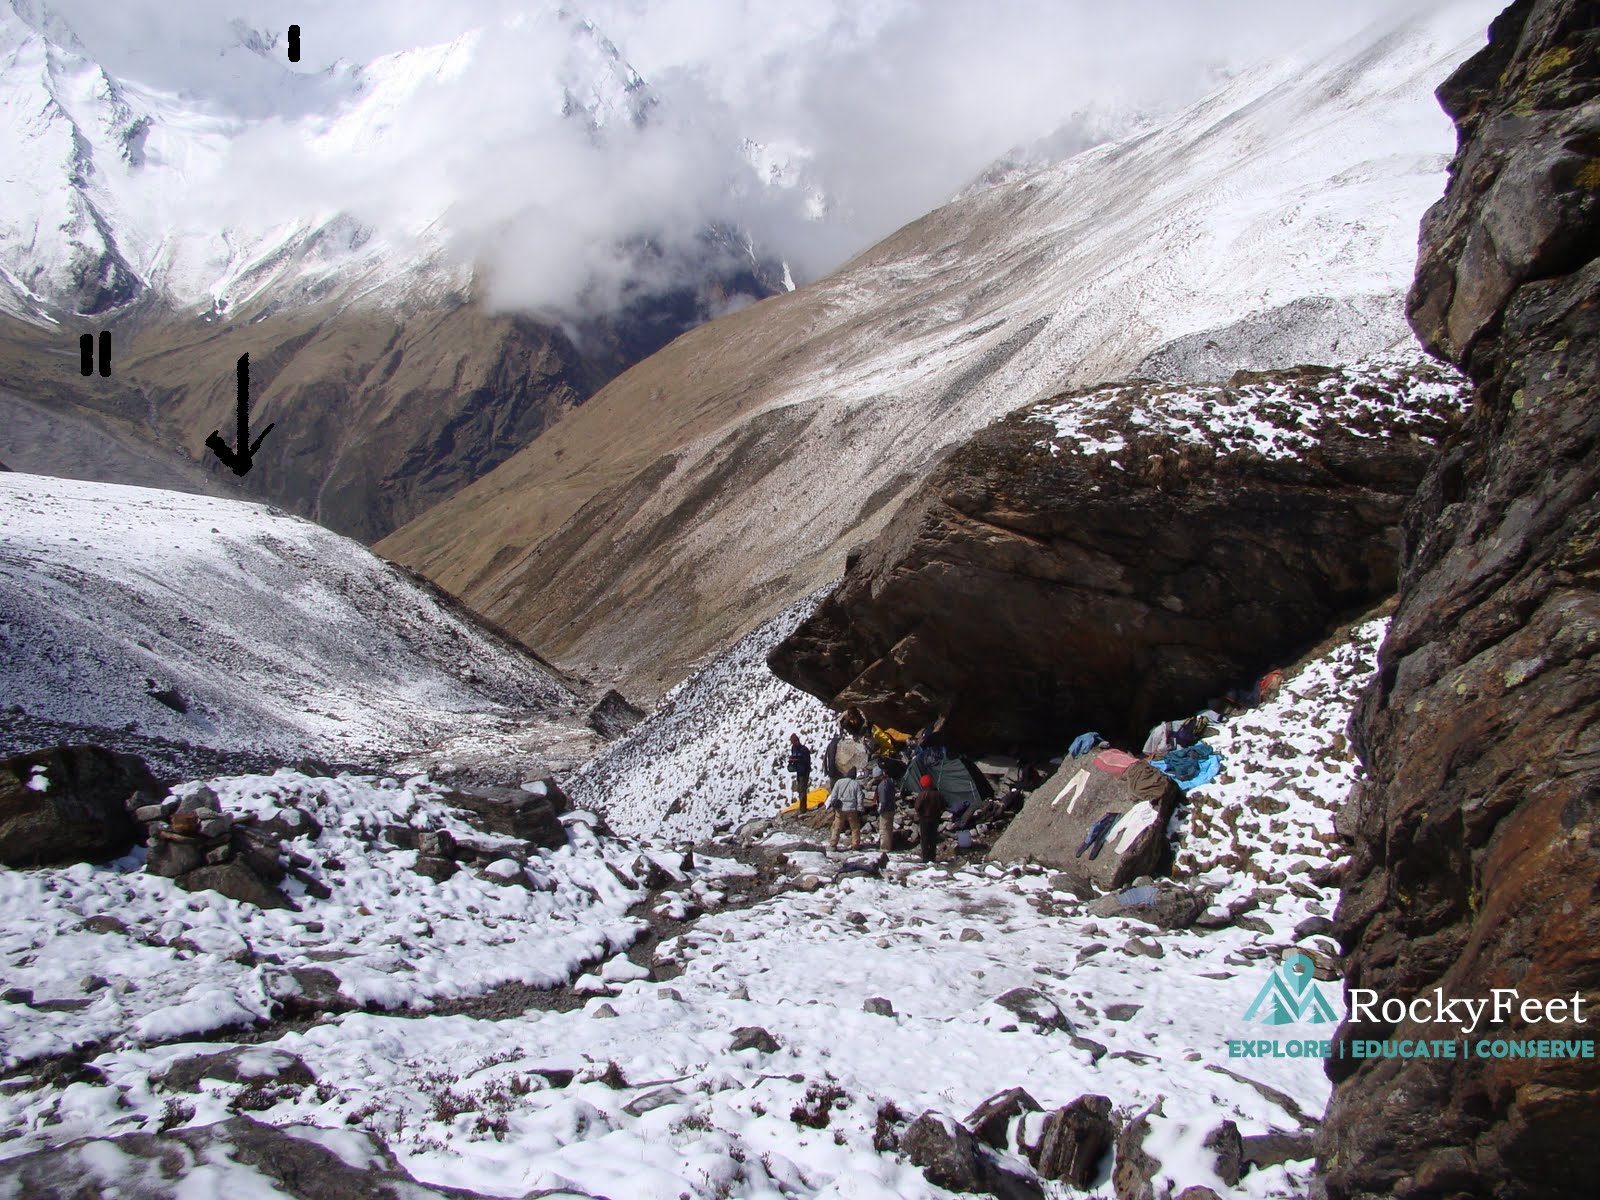 1) Junar gali col. 2) Shila-samudra meadow.  The down pointing arrow shows the location of the Shila-samudra glacier coming from left. Taken from dodang campsite, which as we can see is a rock shelter.